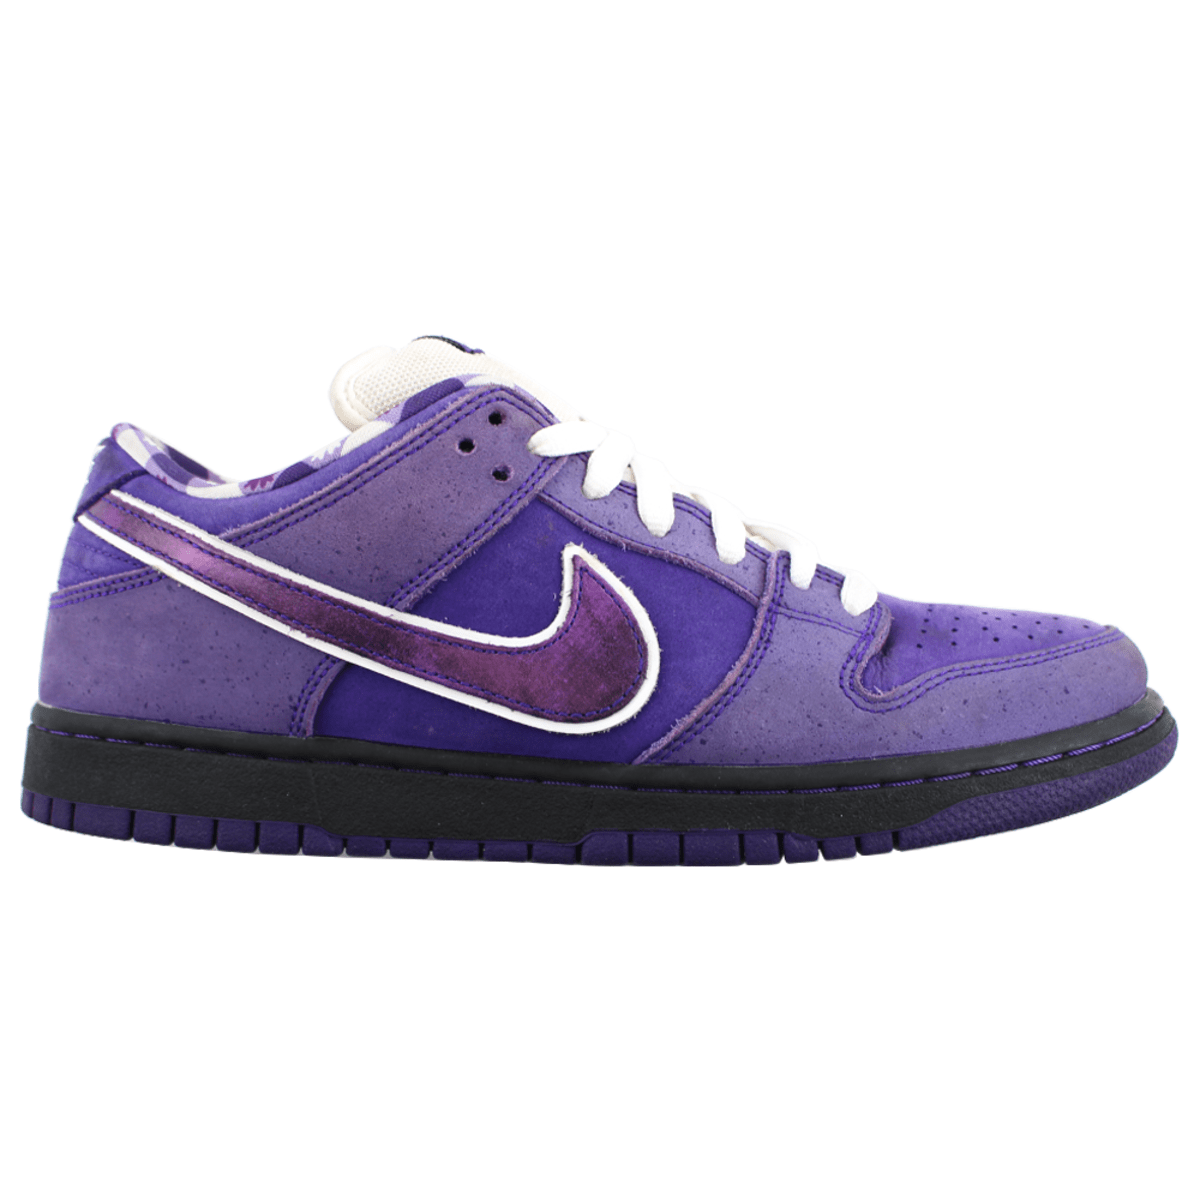 Nike SB Dunk Low Purple Lobster